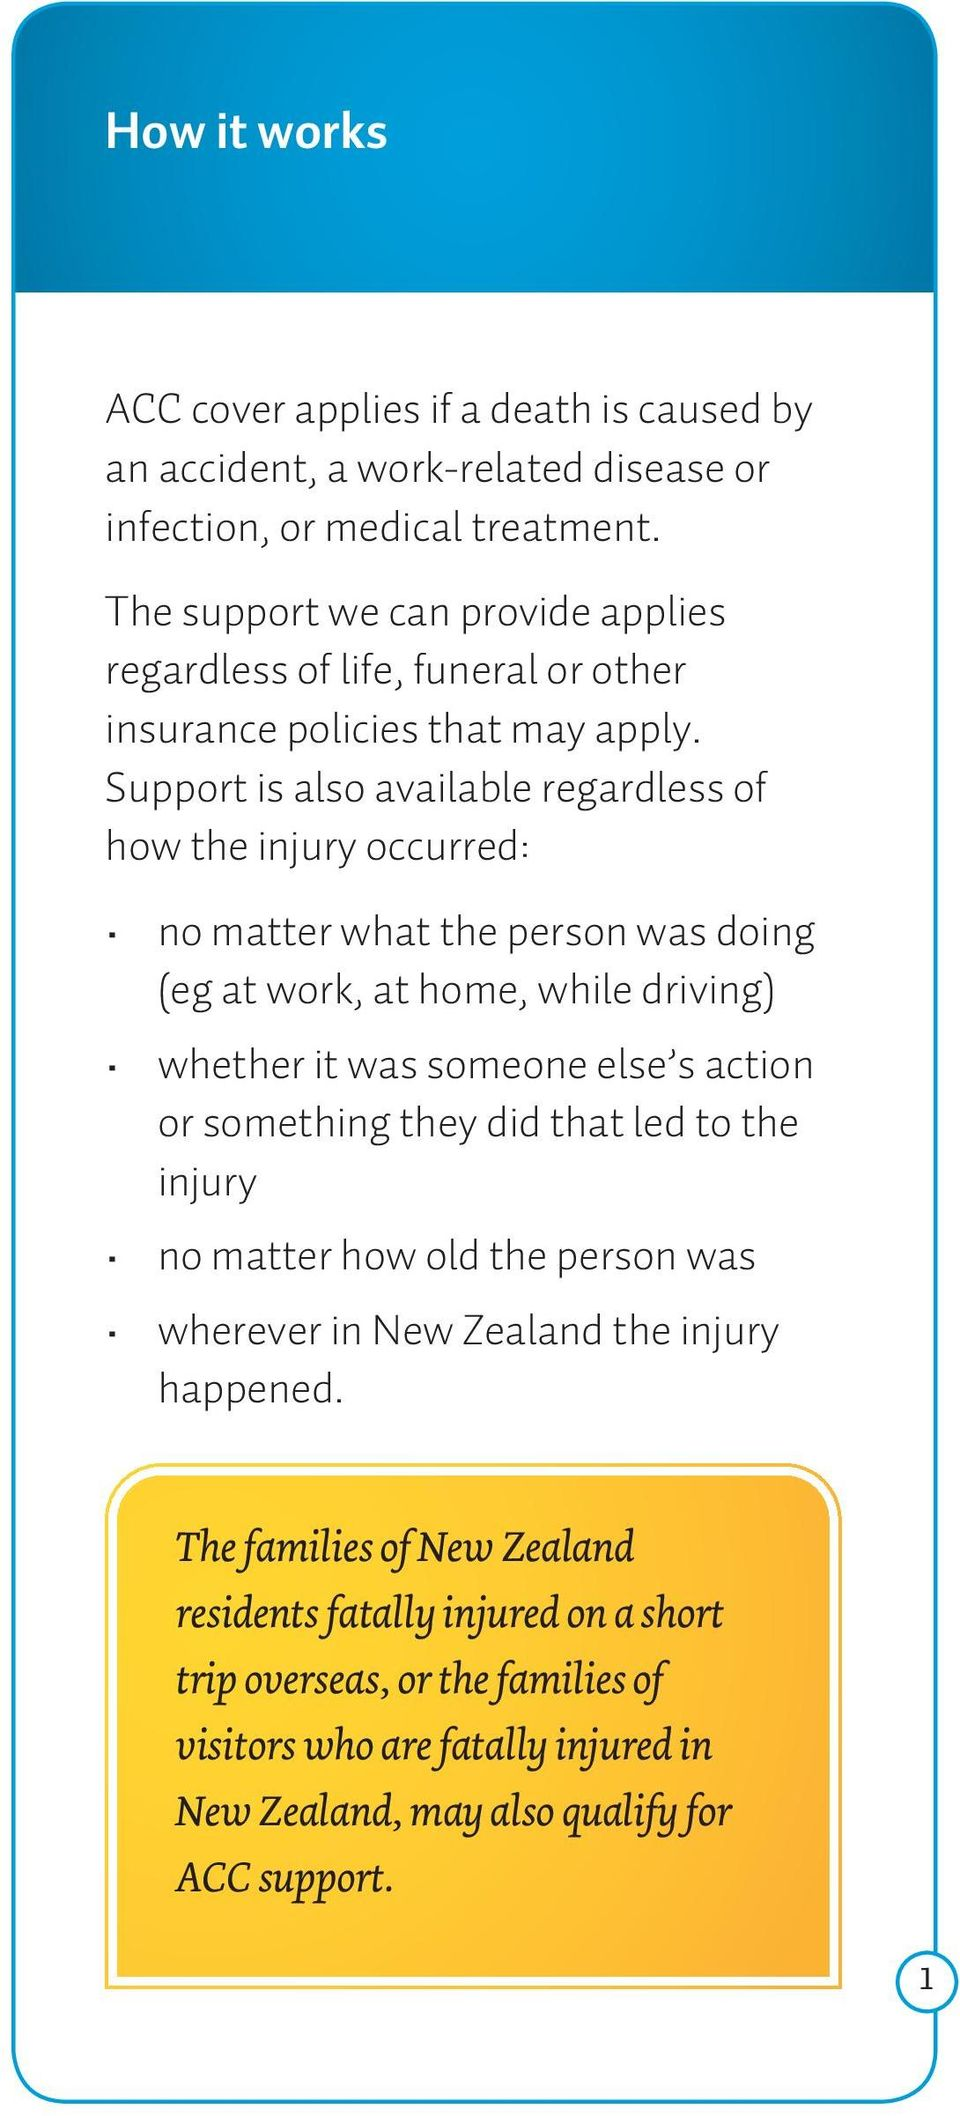 Support is also available regardless of how the injury occurred: no matter what the person was doing (eg at work, at home, while driving) whether it was someone else s action or